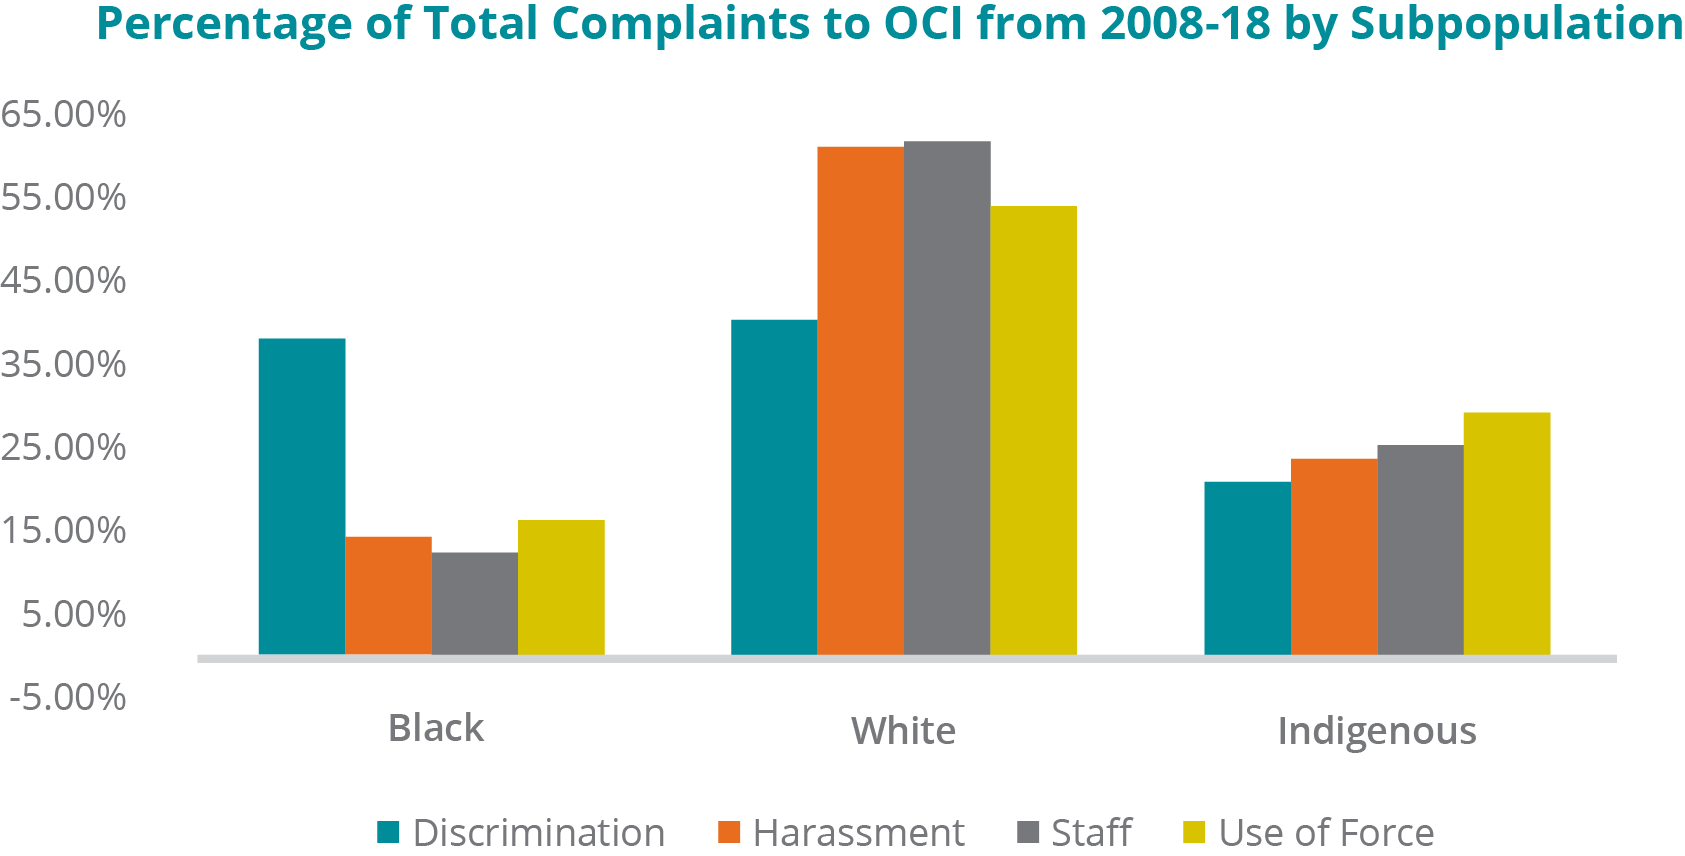 A graph depicting the percentage of specific types of complaints coming from particular ethnic subpopulations, from 2008 to 2018: -	Black inmates: 38.41% of Discrimination complaints; 14.48% of Harassment complaints; 12.50% of complaints about Staff; 16.38% of complaints about a Use of Force. -	White inmates: 40.58% of Discrimination complaints; 61.56% of Harassment complaints; 62.02% of complaints about Staff; 54.31% of complaints about a Use of Force. -	Indigenous inmates: 21.01% of Discrimination complaints; 23.96% of Harassment complaints; 25.48% of complaints about Staff; 29.31% of complaints about a Use of Force.